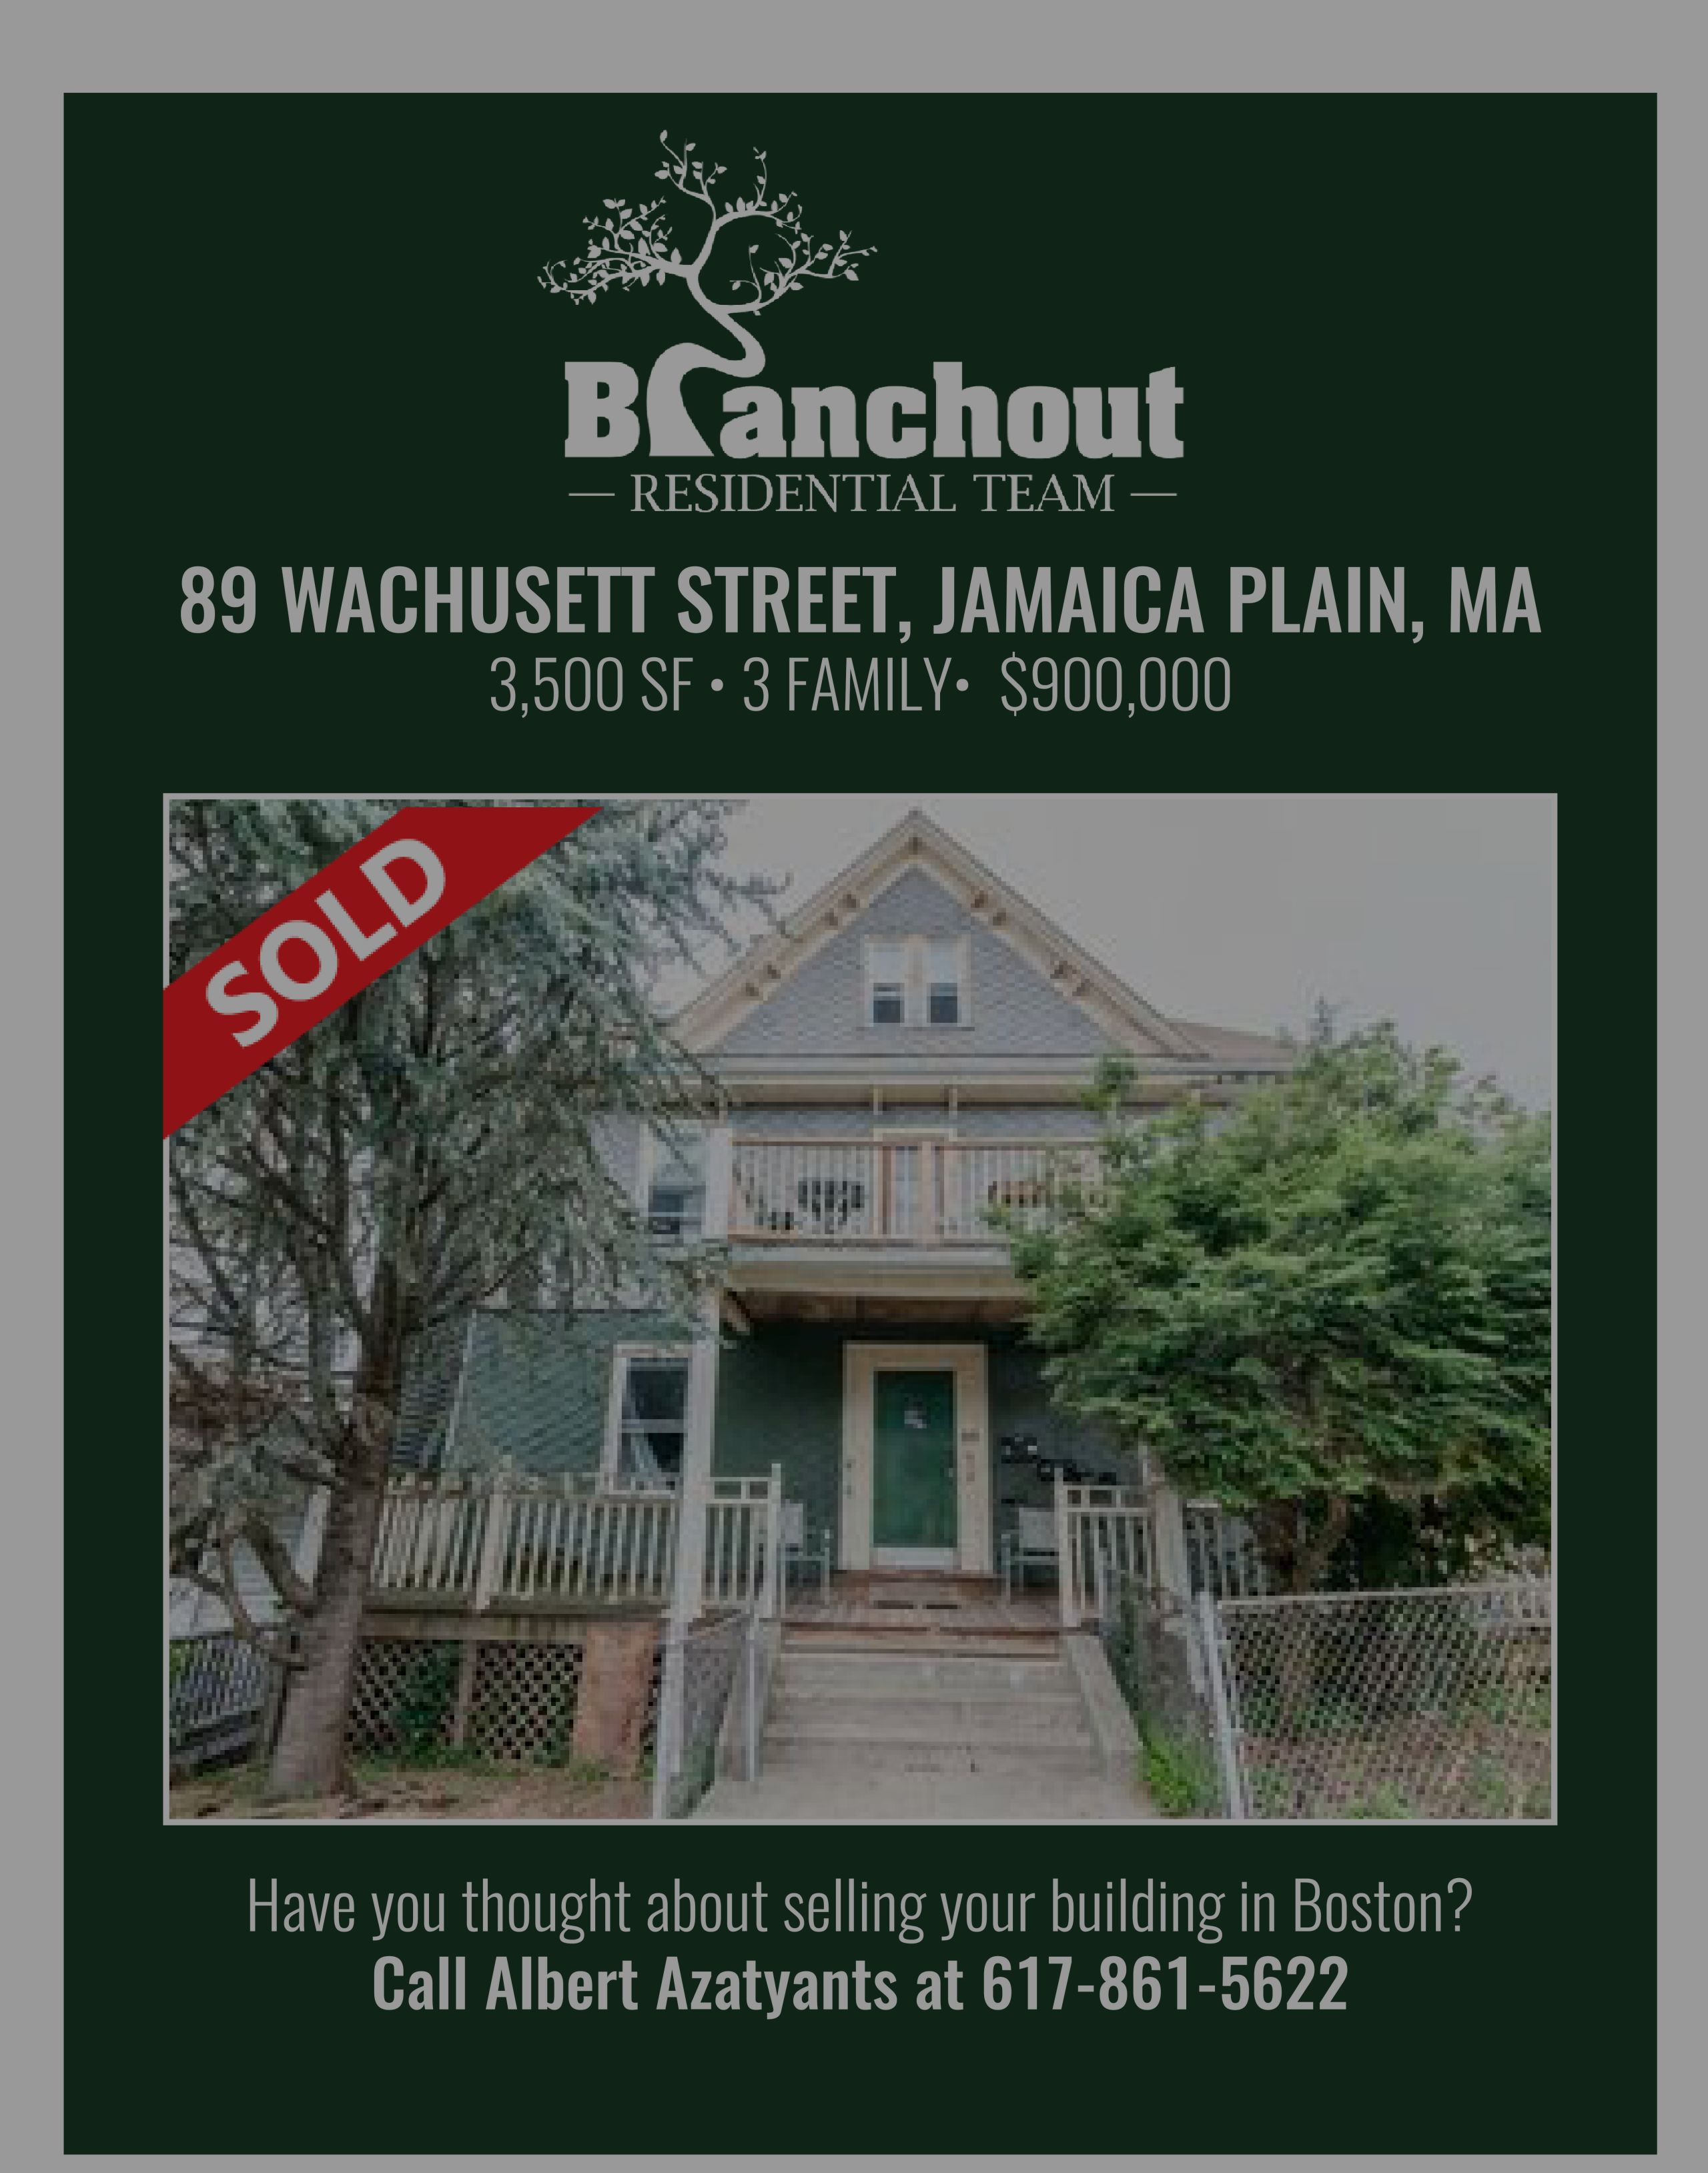 Just Sold! Investment Property In Jamaica Plain